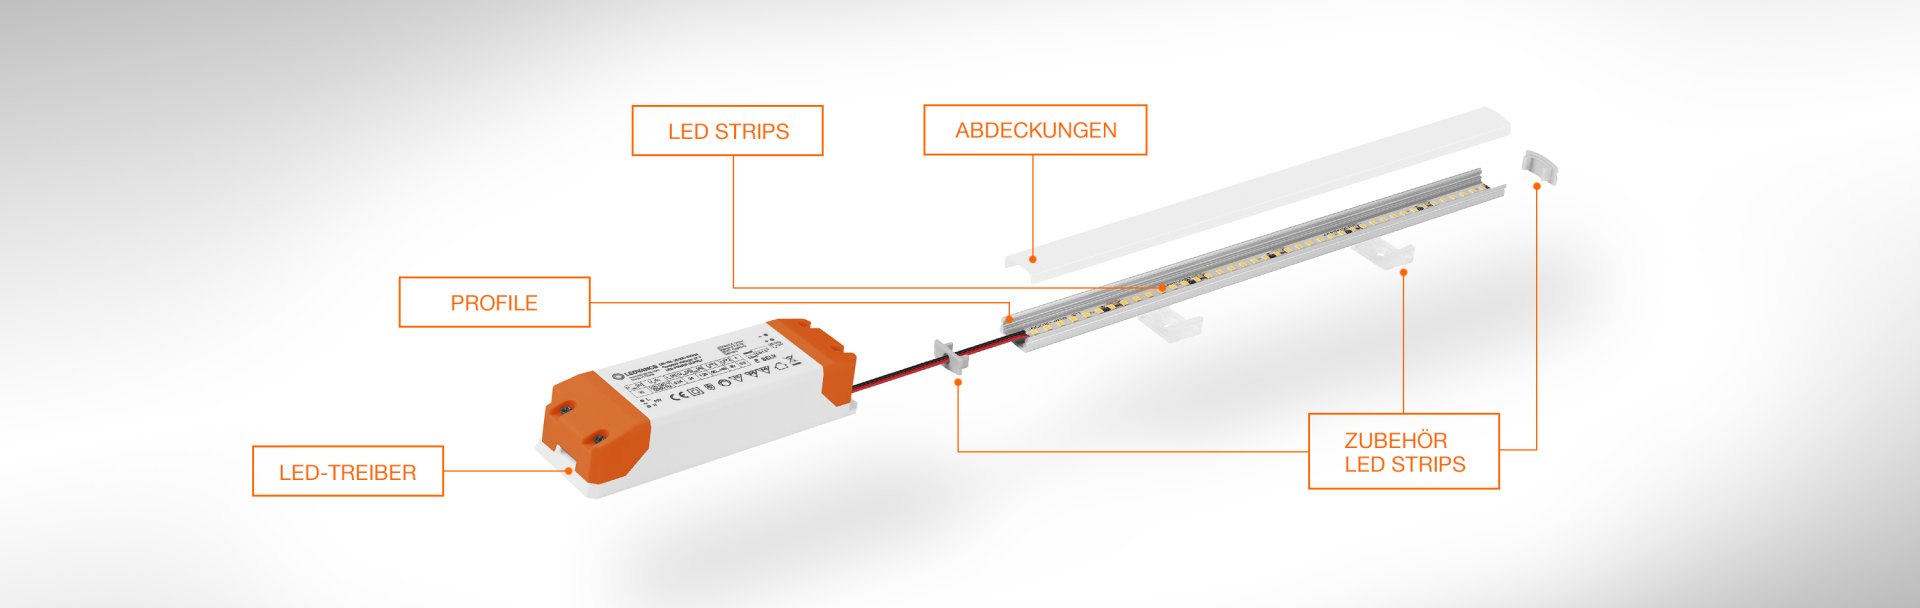 LED-Strip-System Konfigurator